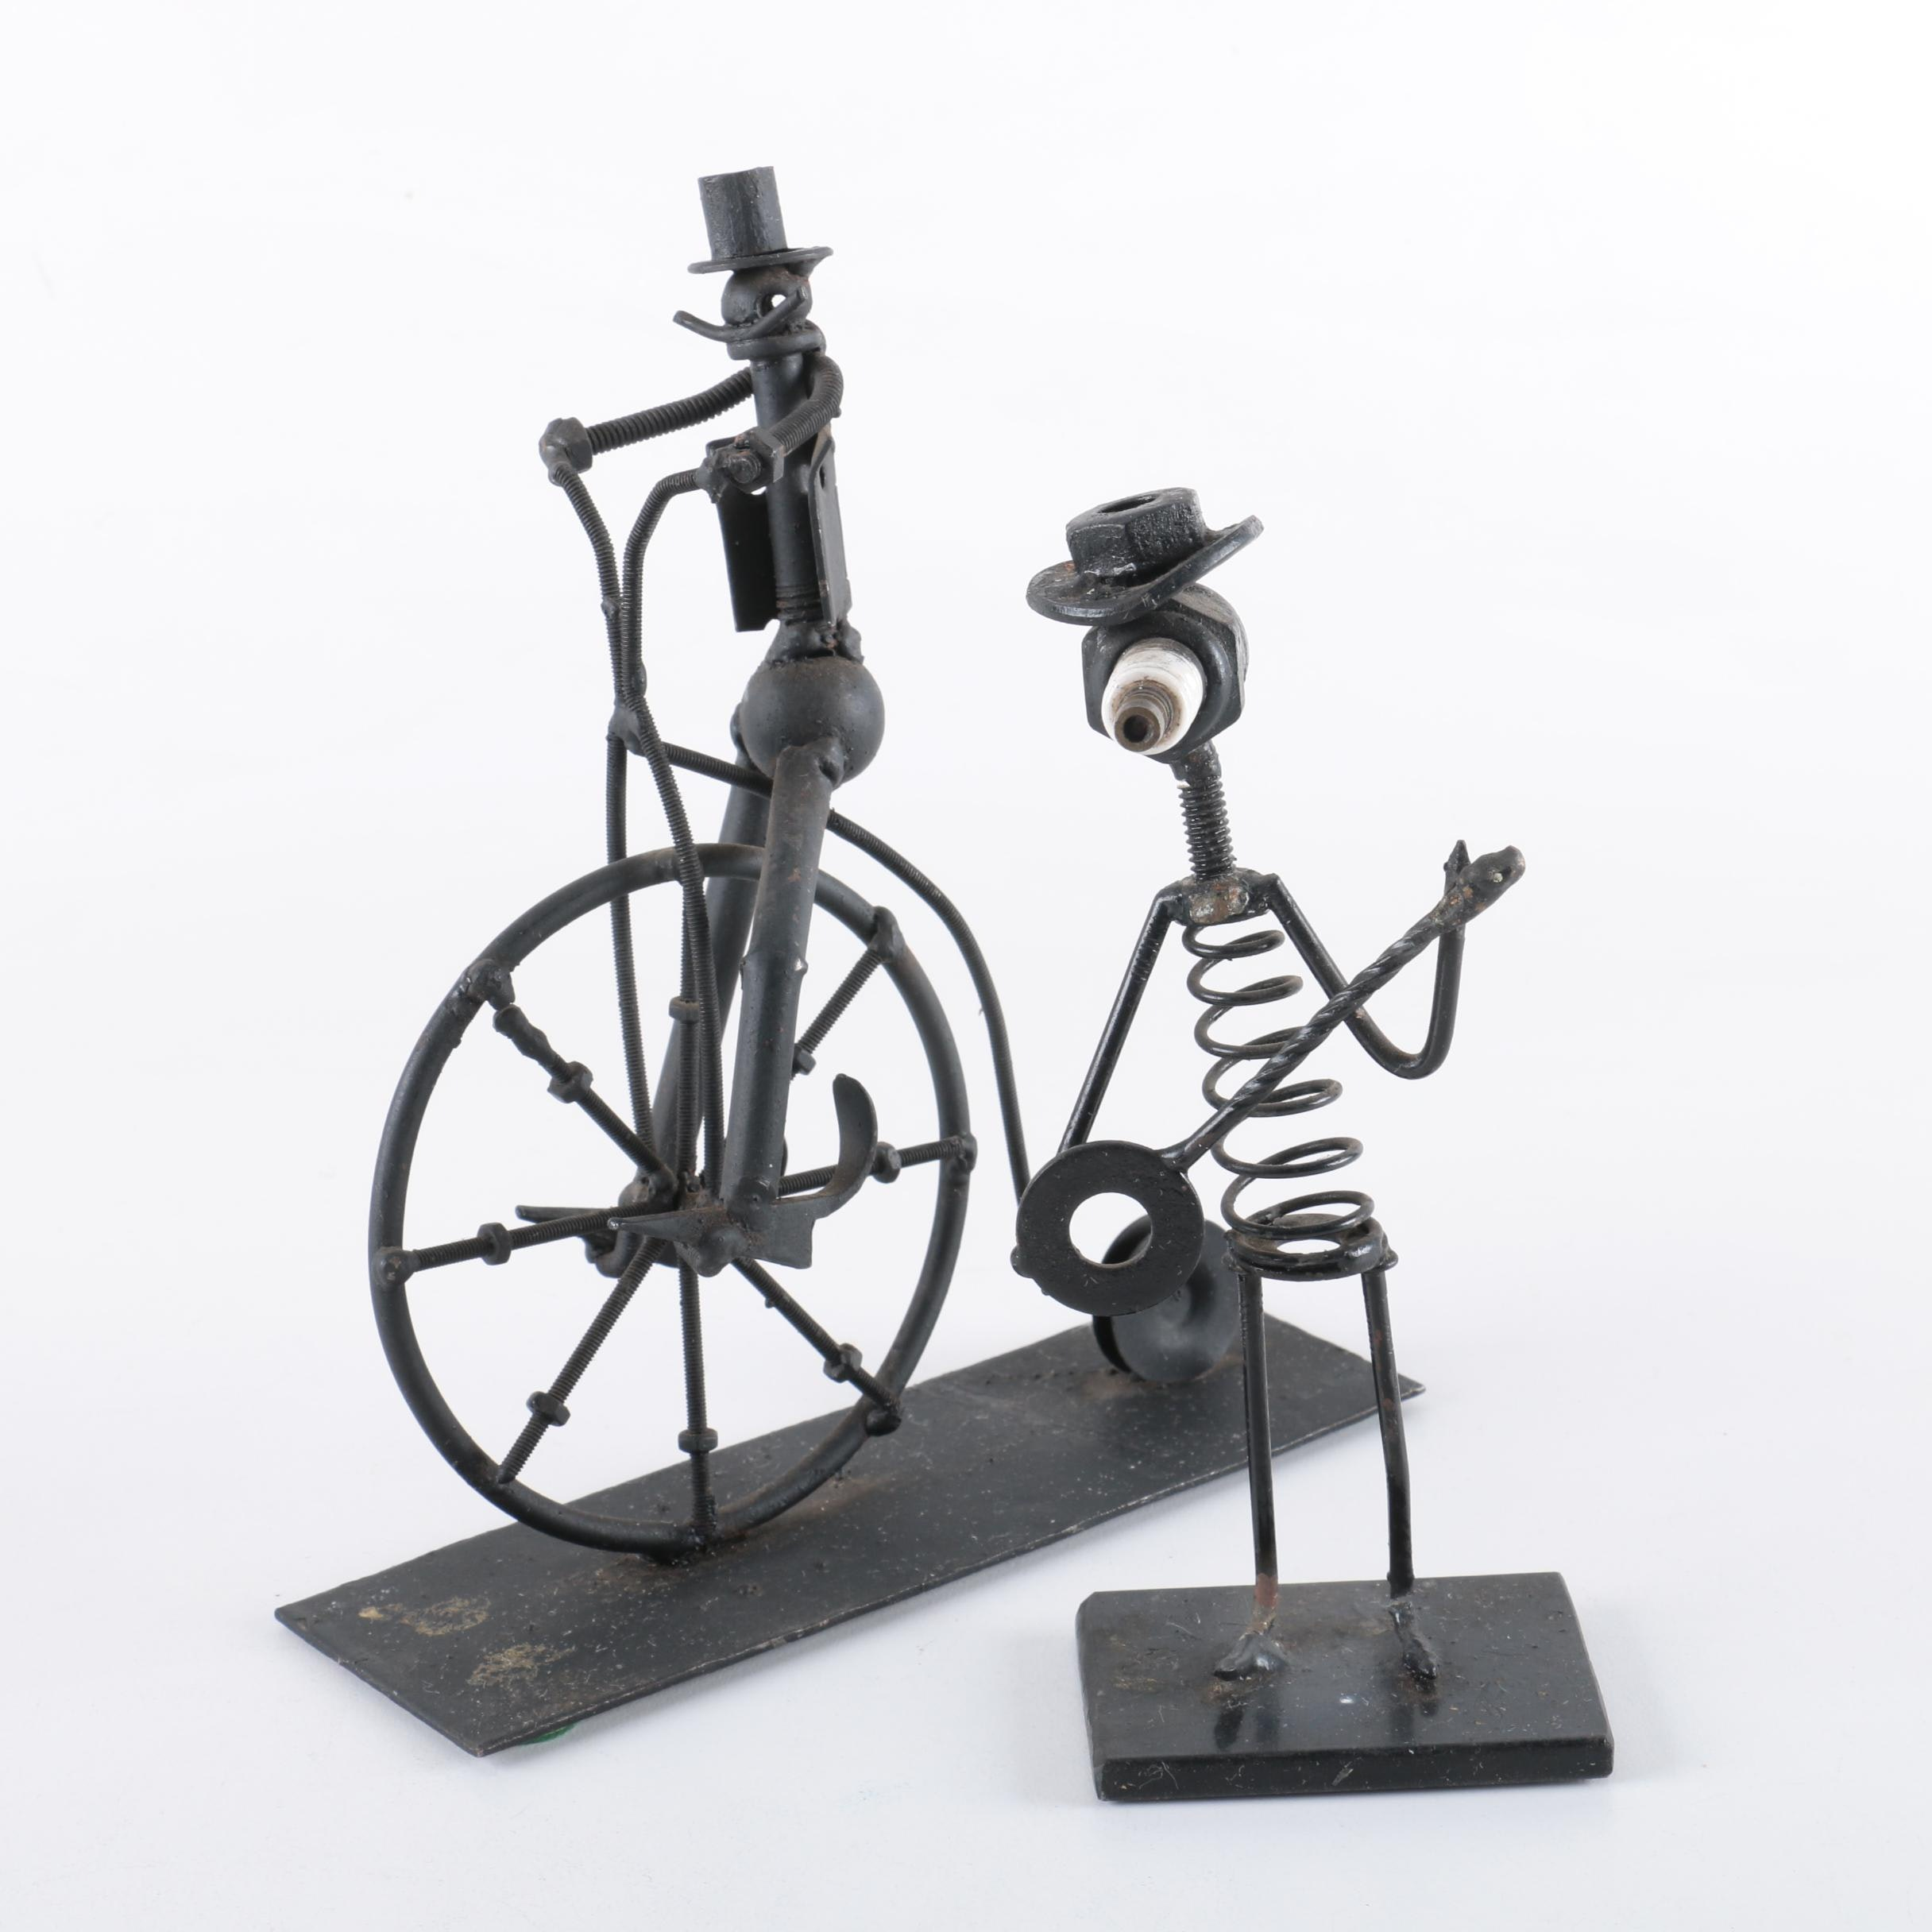 Metal Figurines One on a Vintage Bicycle the Other Playing a Banjo